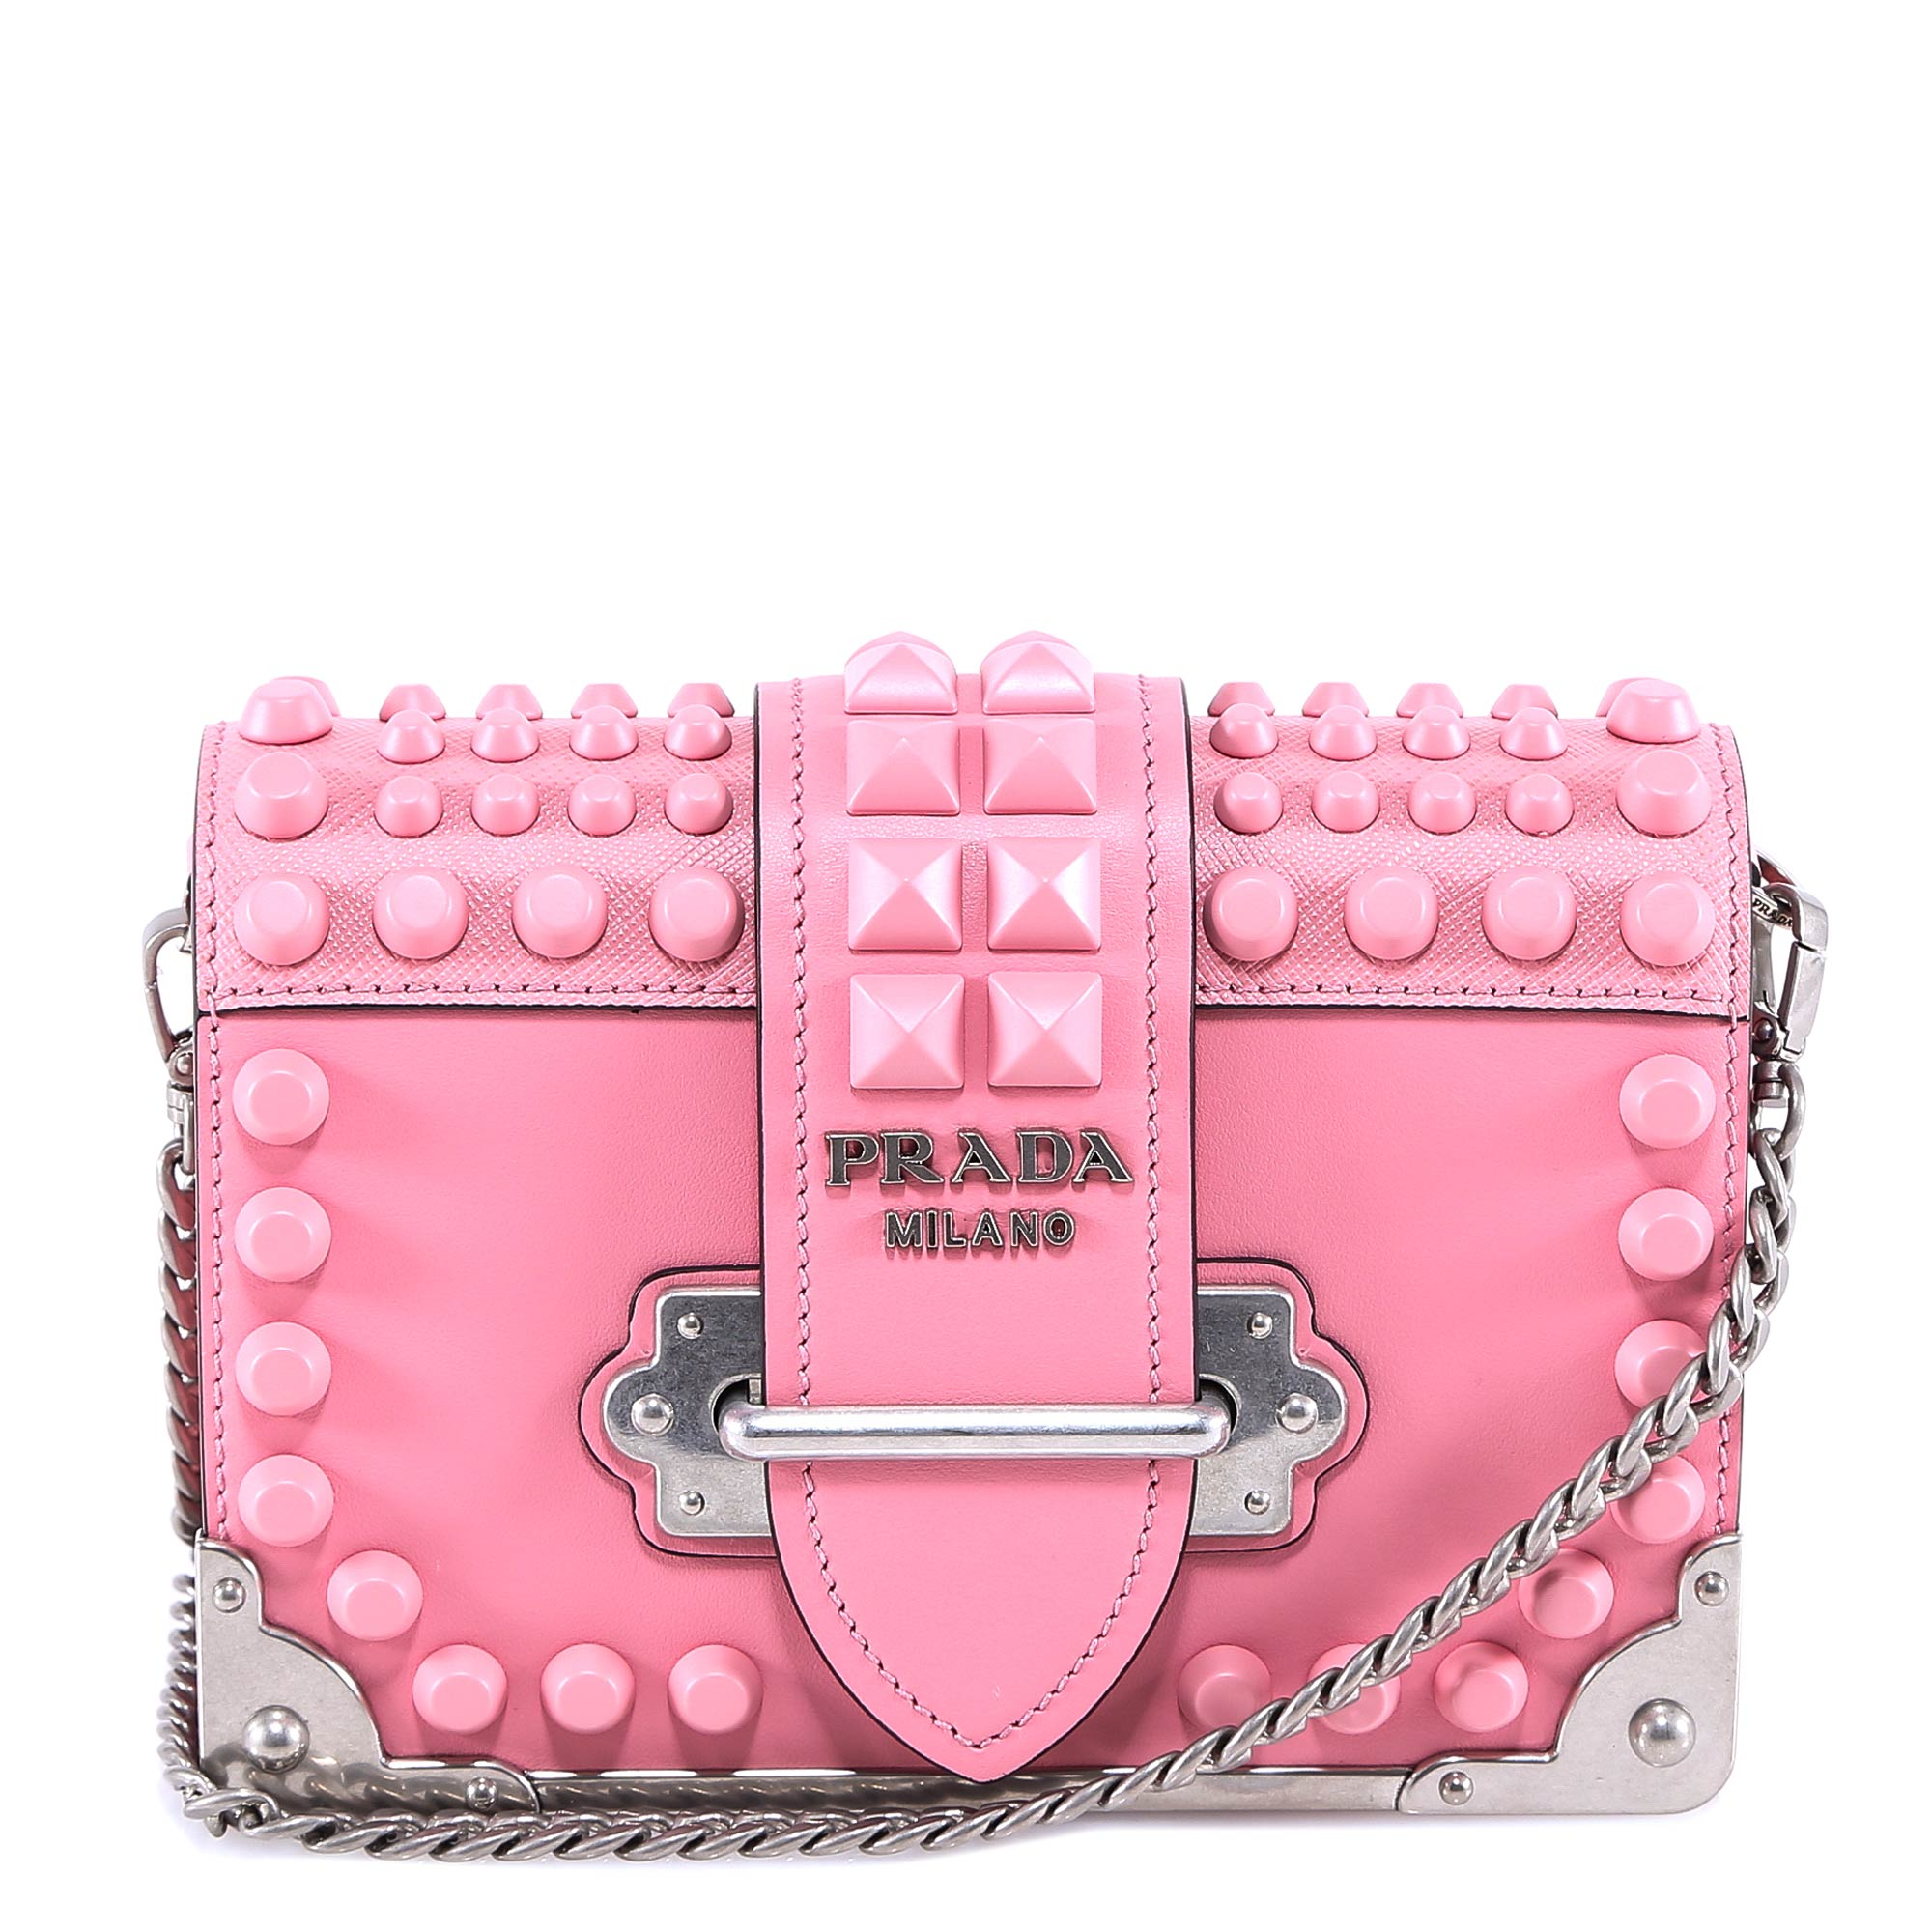 'Cahier' Bag in Pink